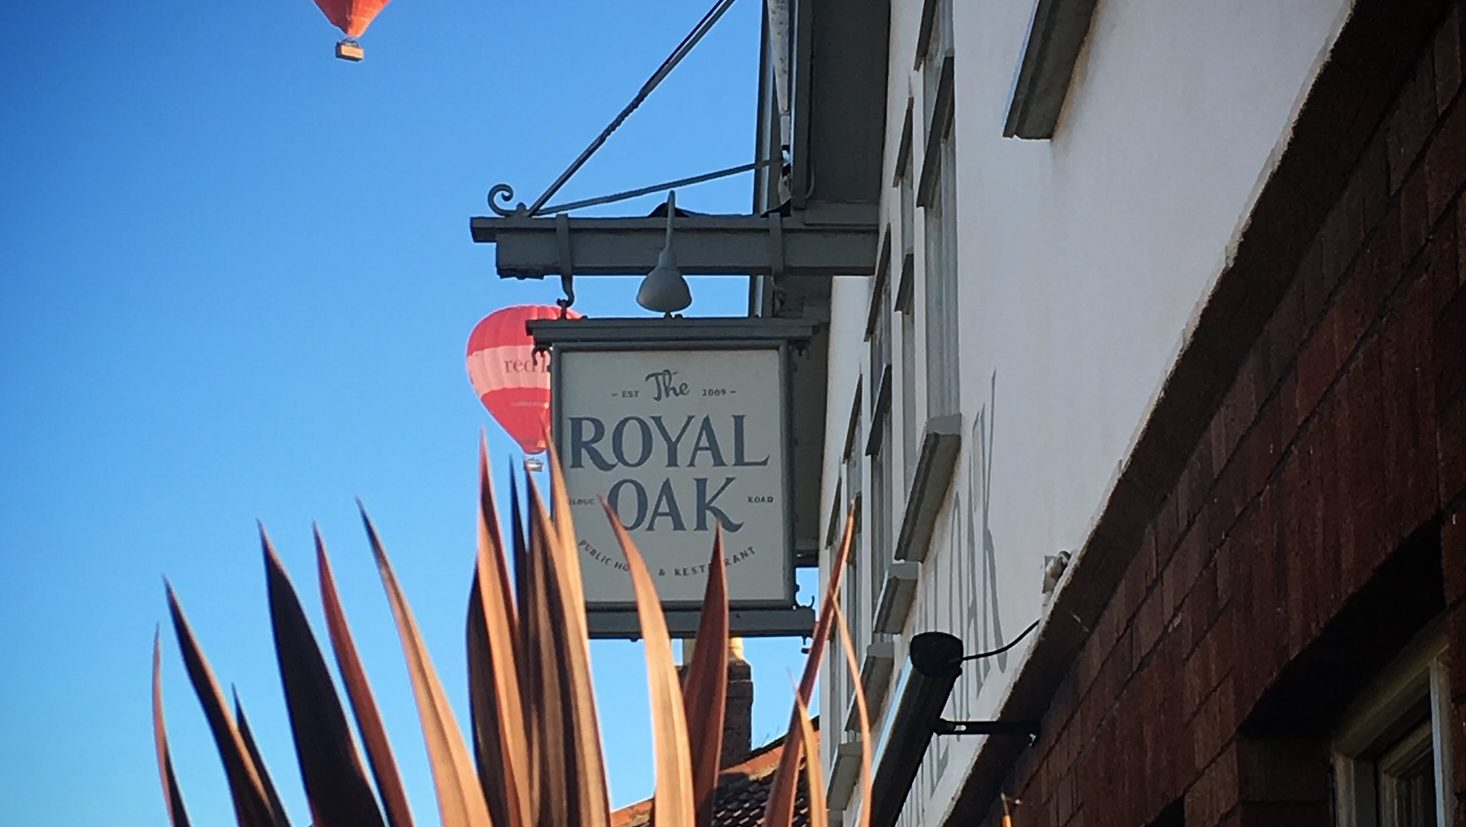 exterior and sign of royal oak